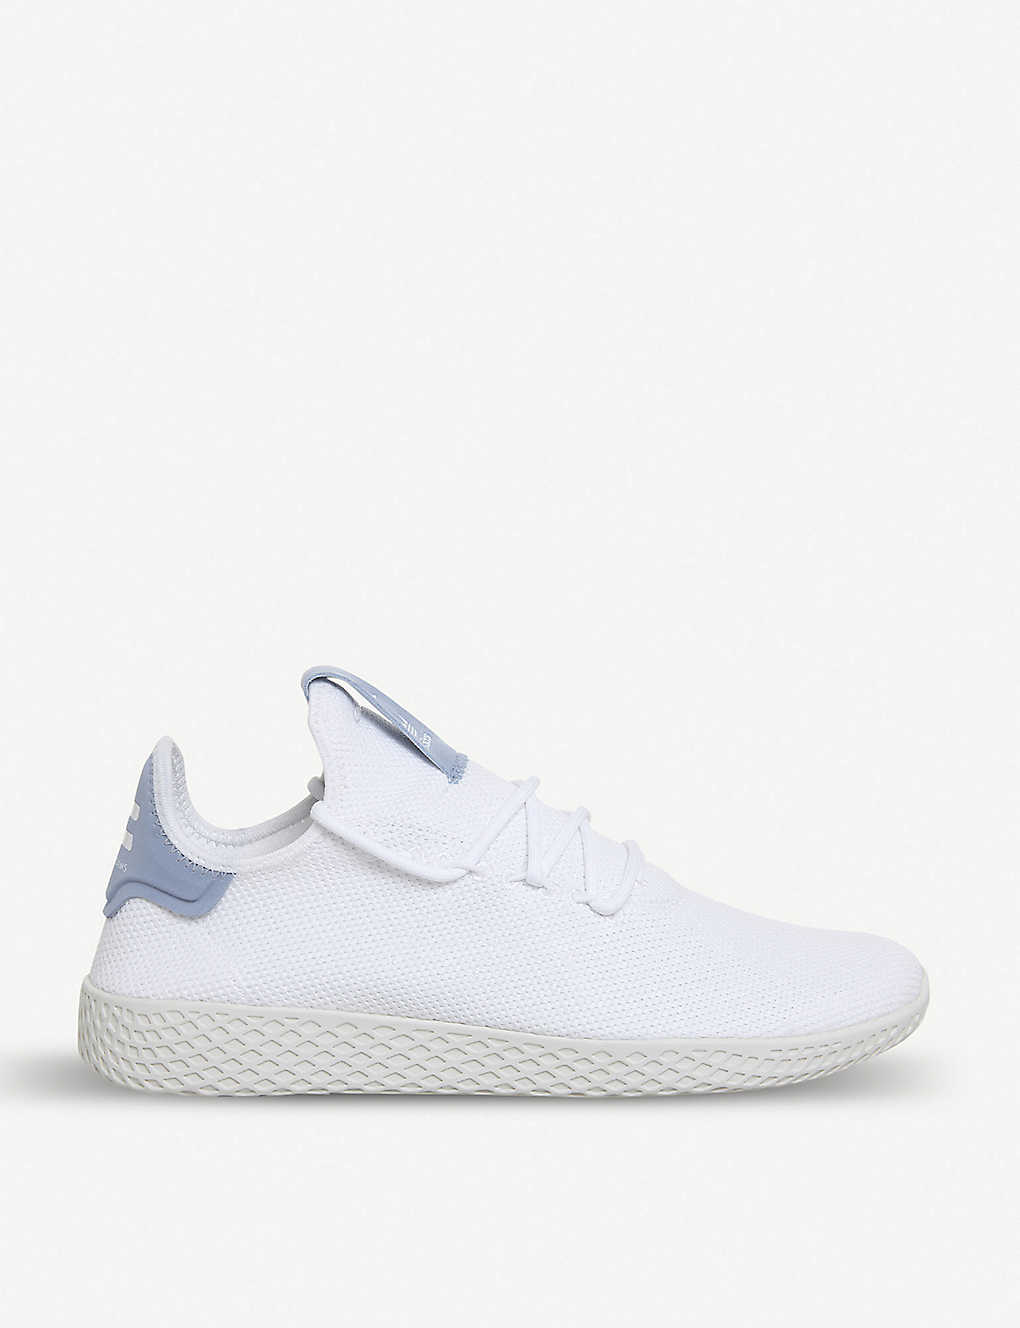 ADIDAS - Pharrell Williams Tennis Hu mesh trainers  7ab6d73e5